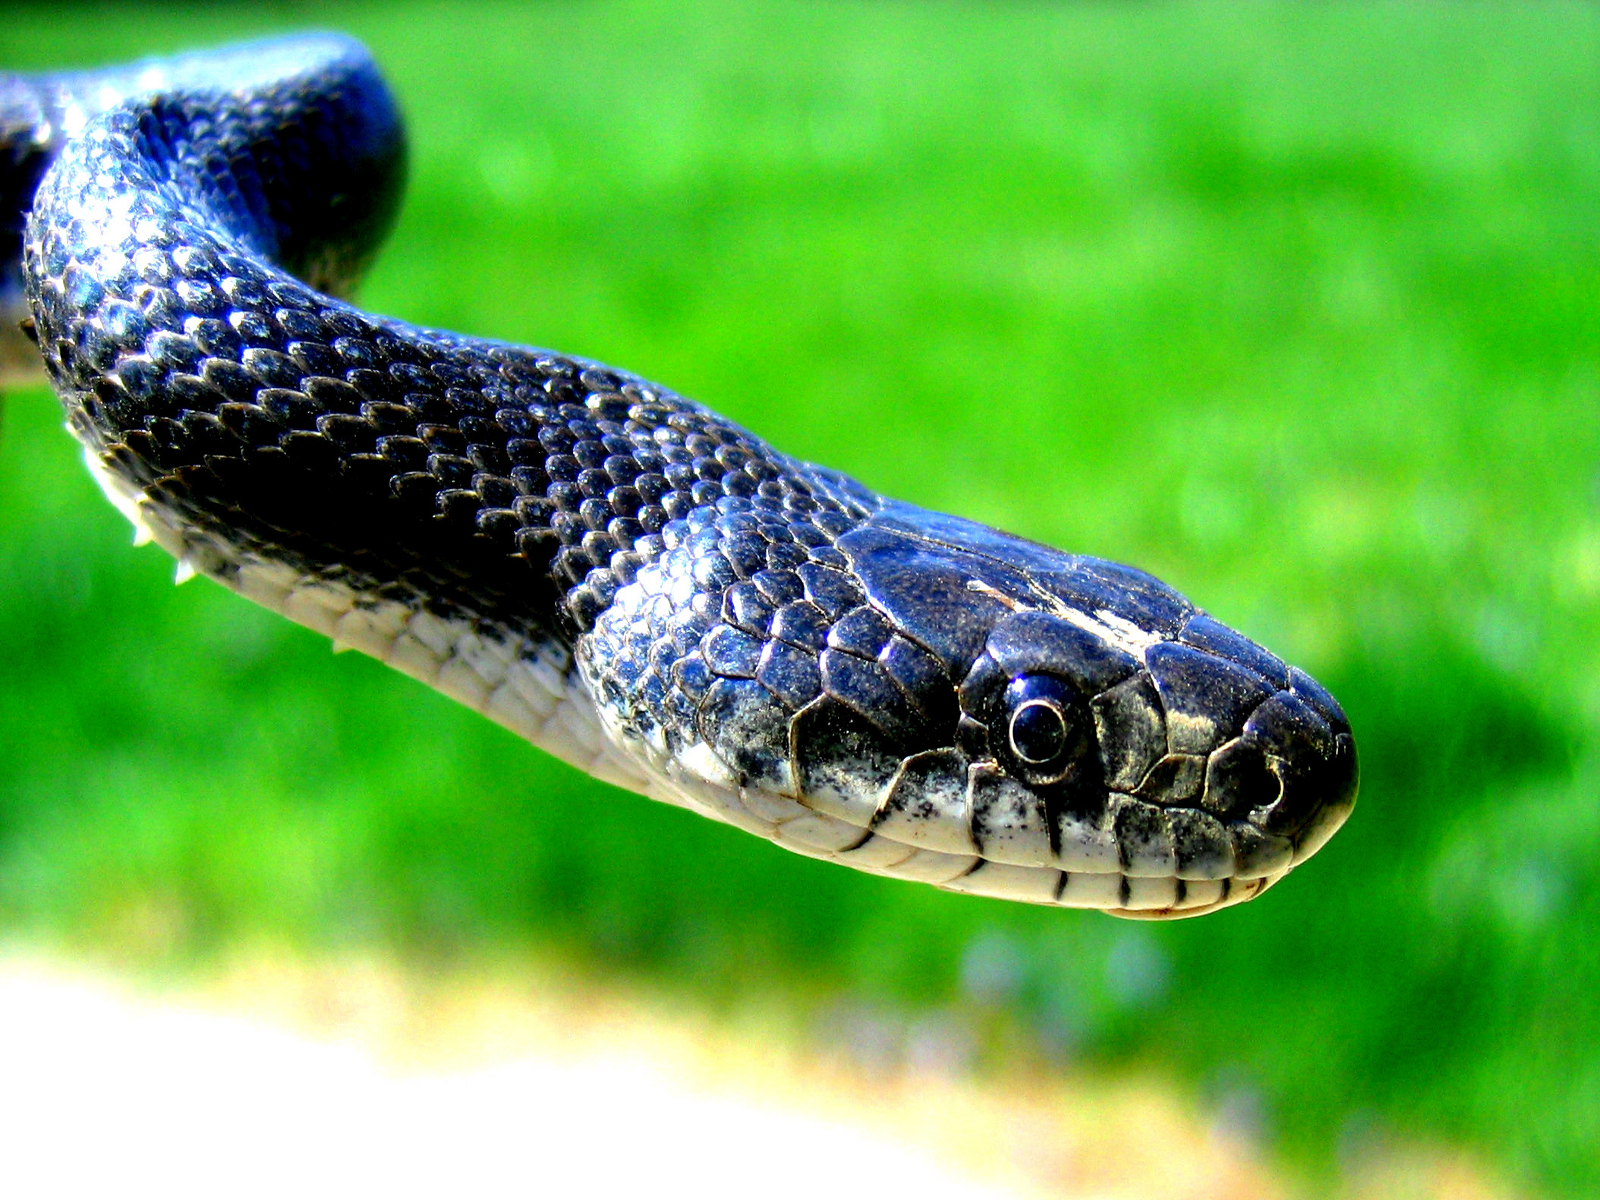 HD Wallpaper of Blue Snake | HD Wallpapers